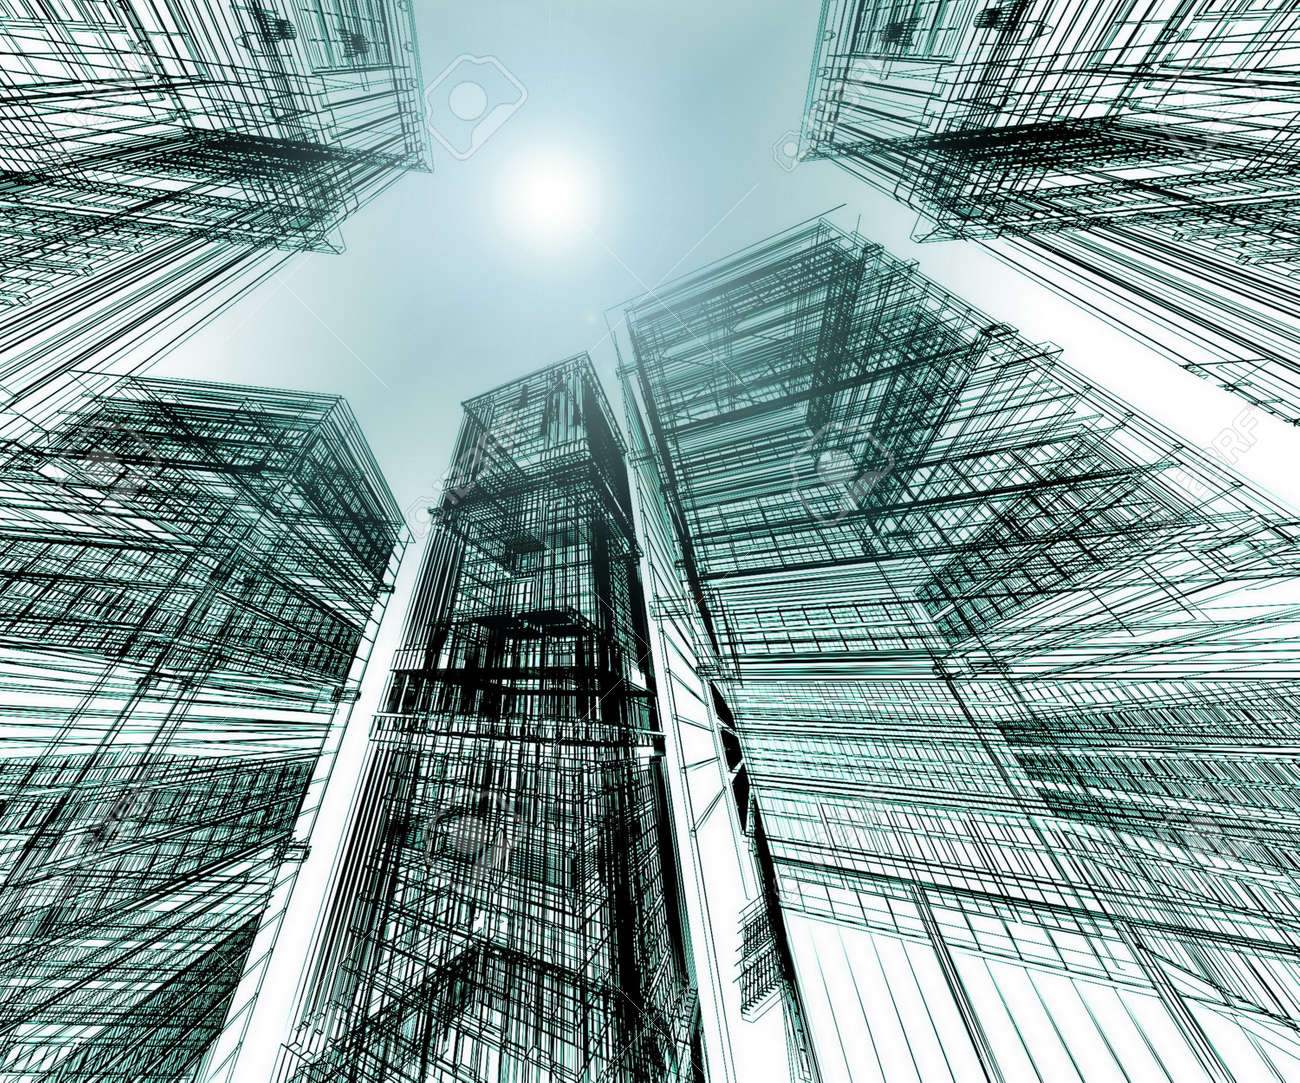 Abstract Architectural 3D Construction Stock Photo, Picture And ... 841ef7c43a60